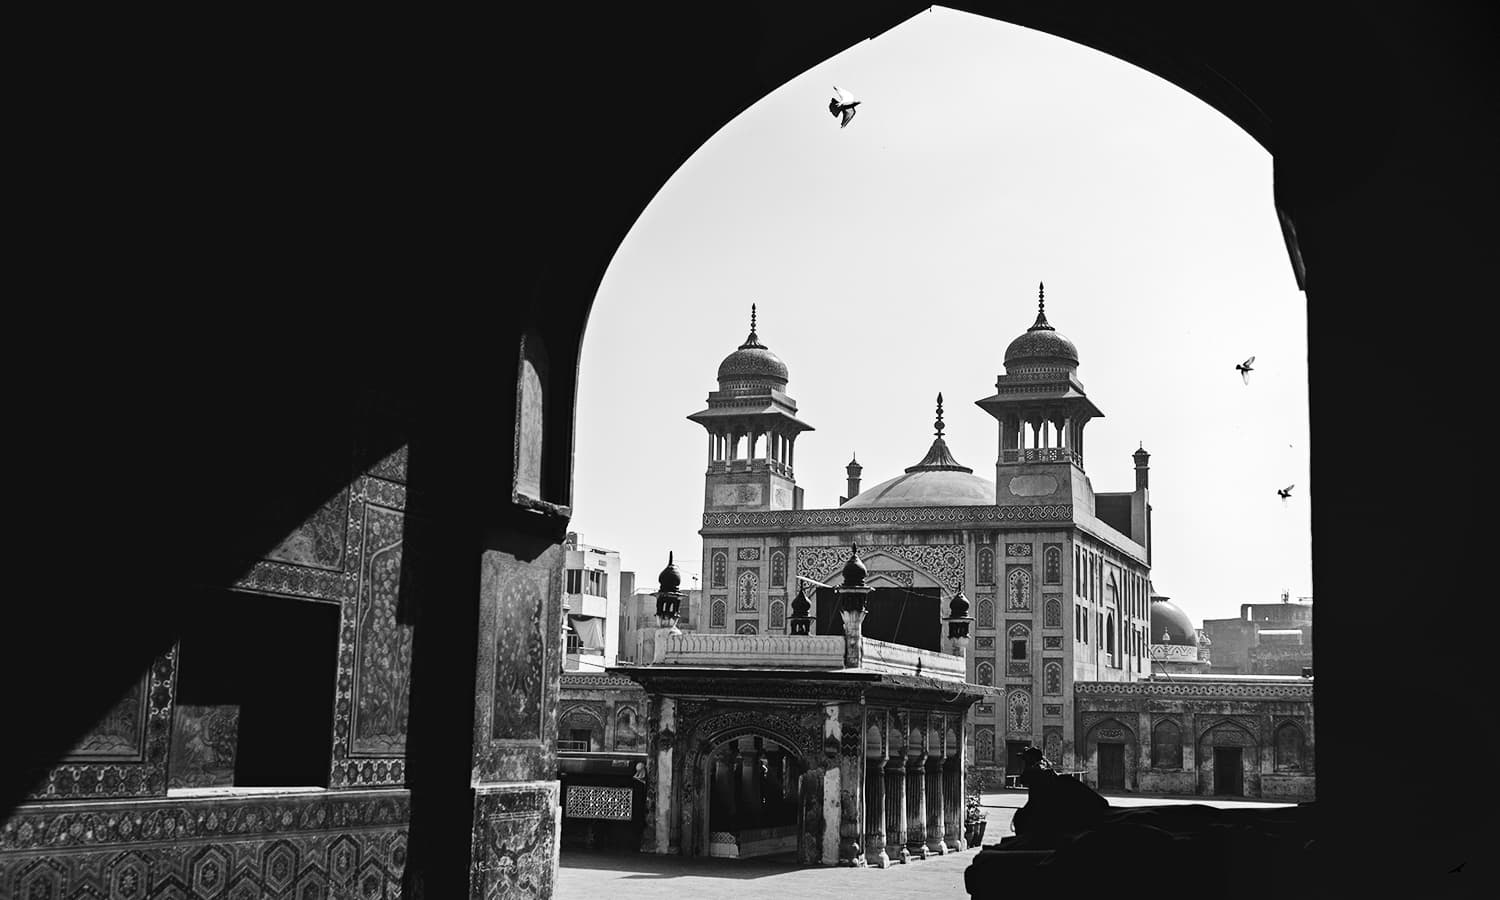 A city of lost wonders. I remember watching these old buildings and wondering who used to live there and what their lives were like? —Photo by Khalil Shah/The copyrights of the image are the sole property of the photographer and cannot be re-sold or transferred in any way.